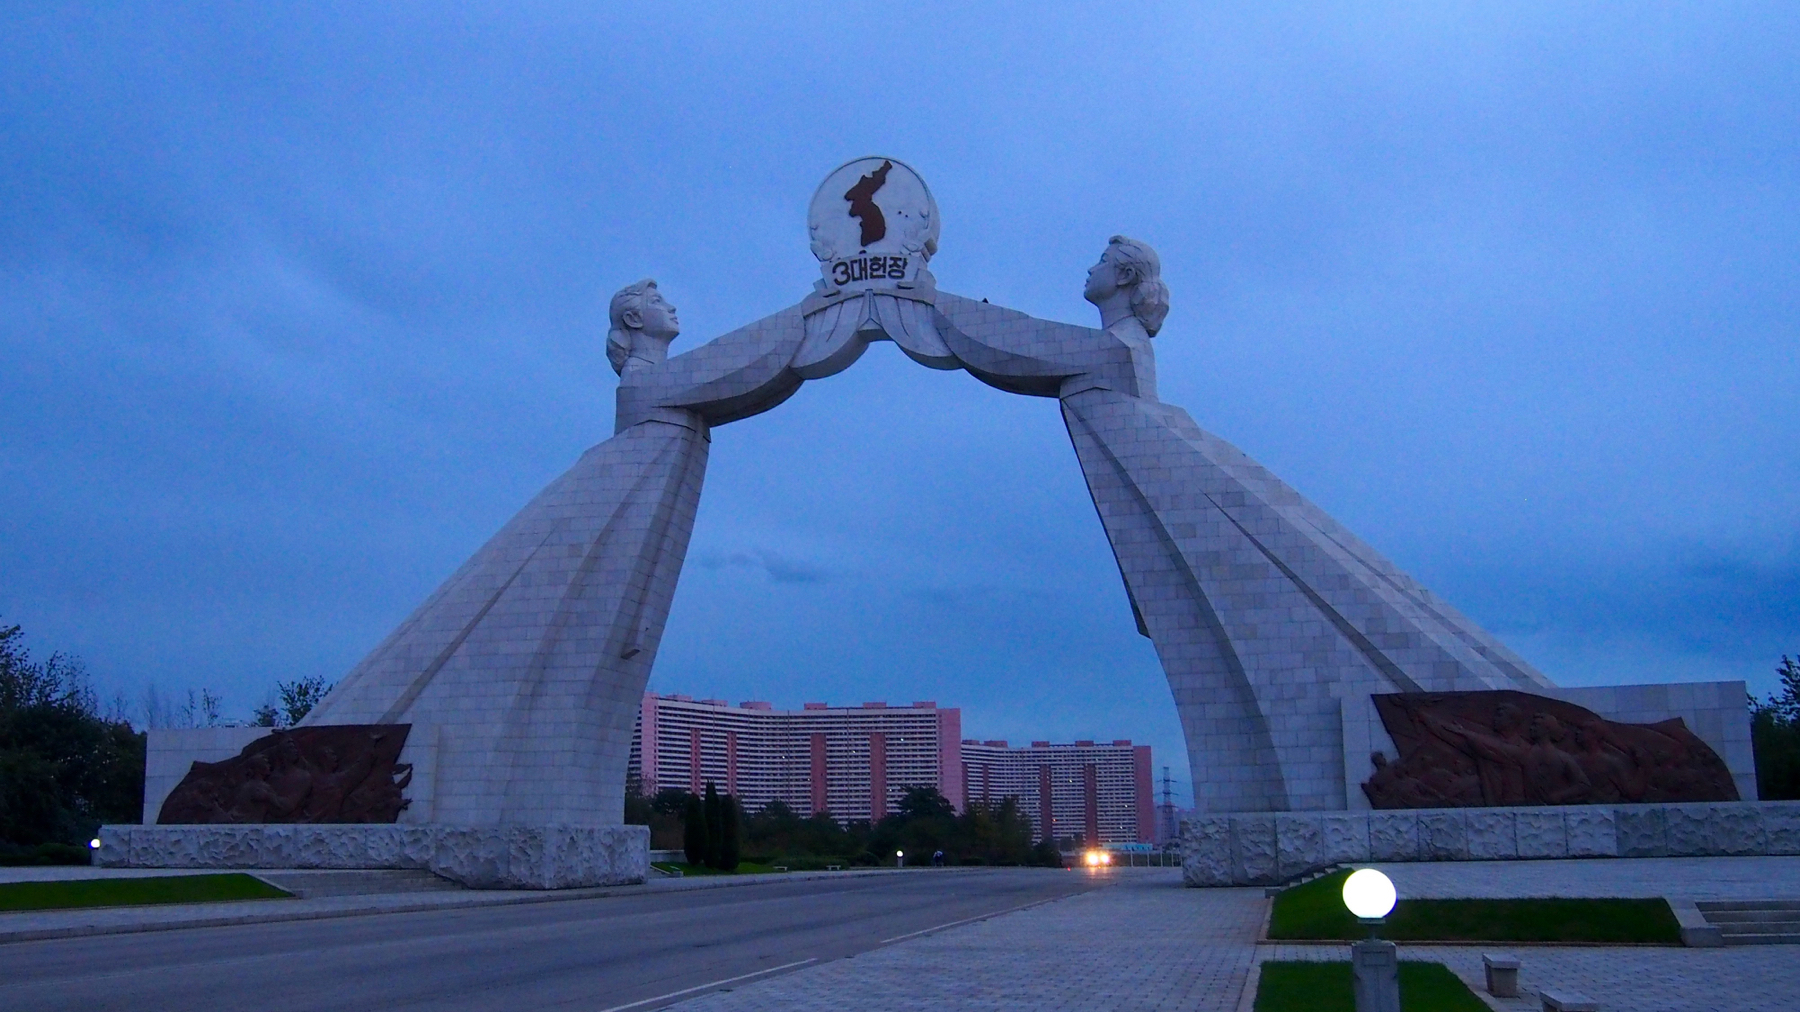 A quick stop on our way back into Pyongyang featured this gate representing the two halves of the country coming together in reunification.